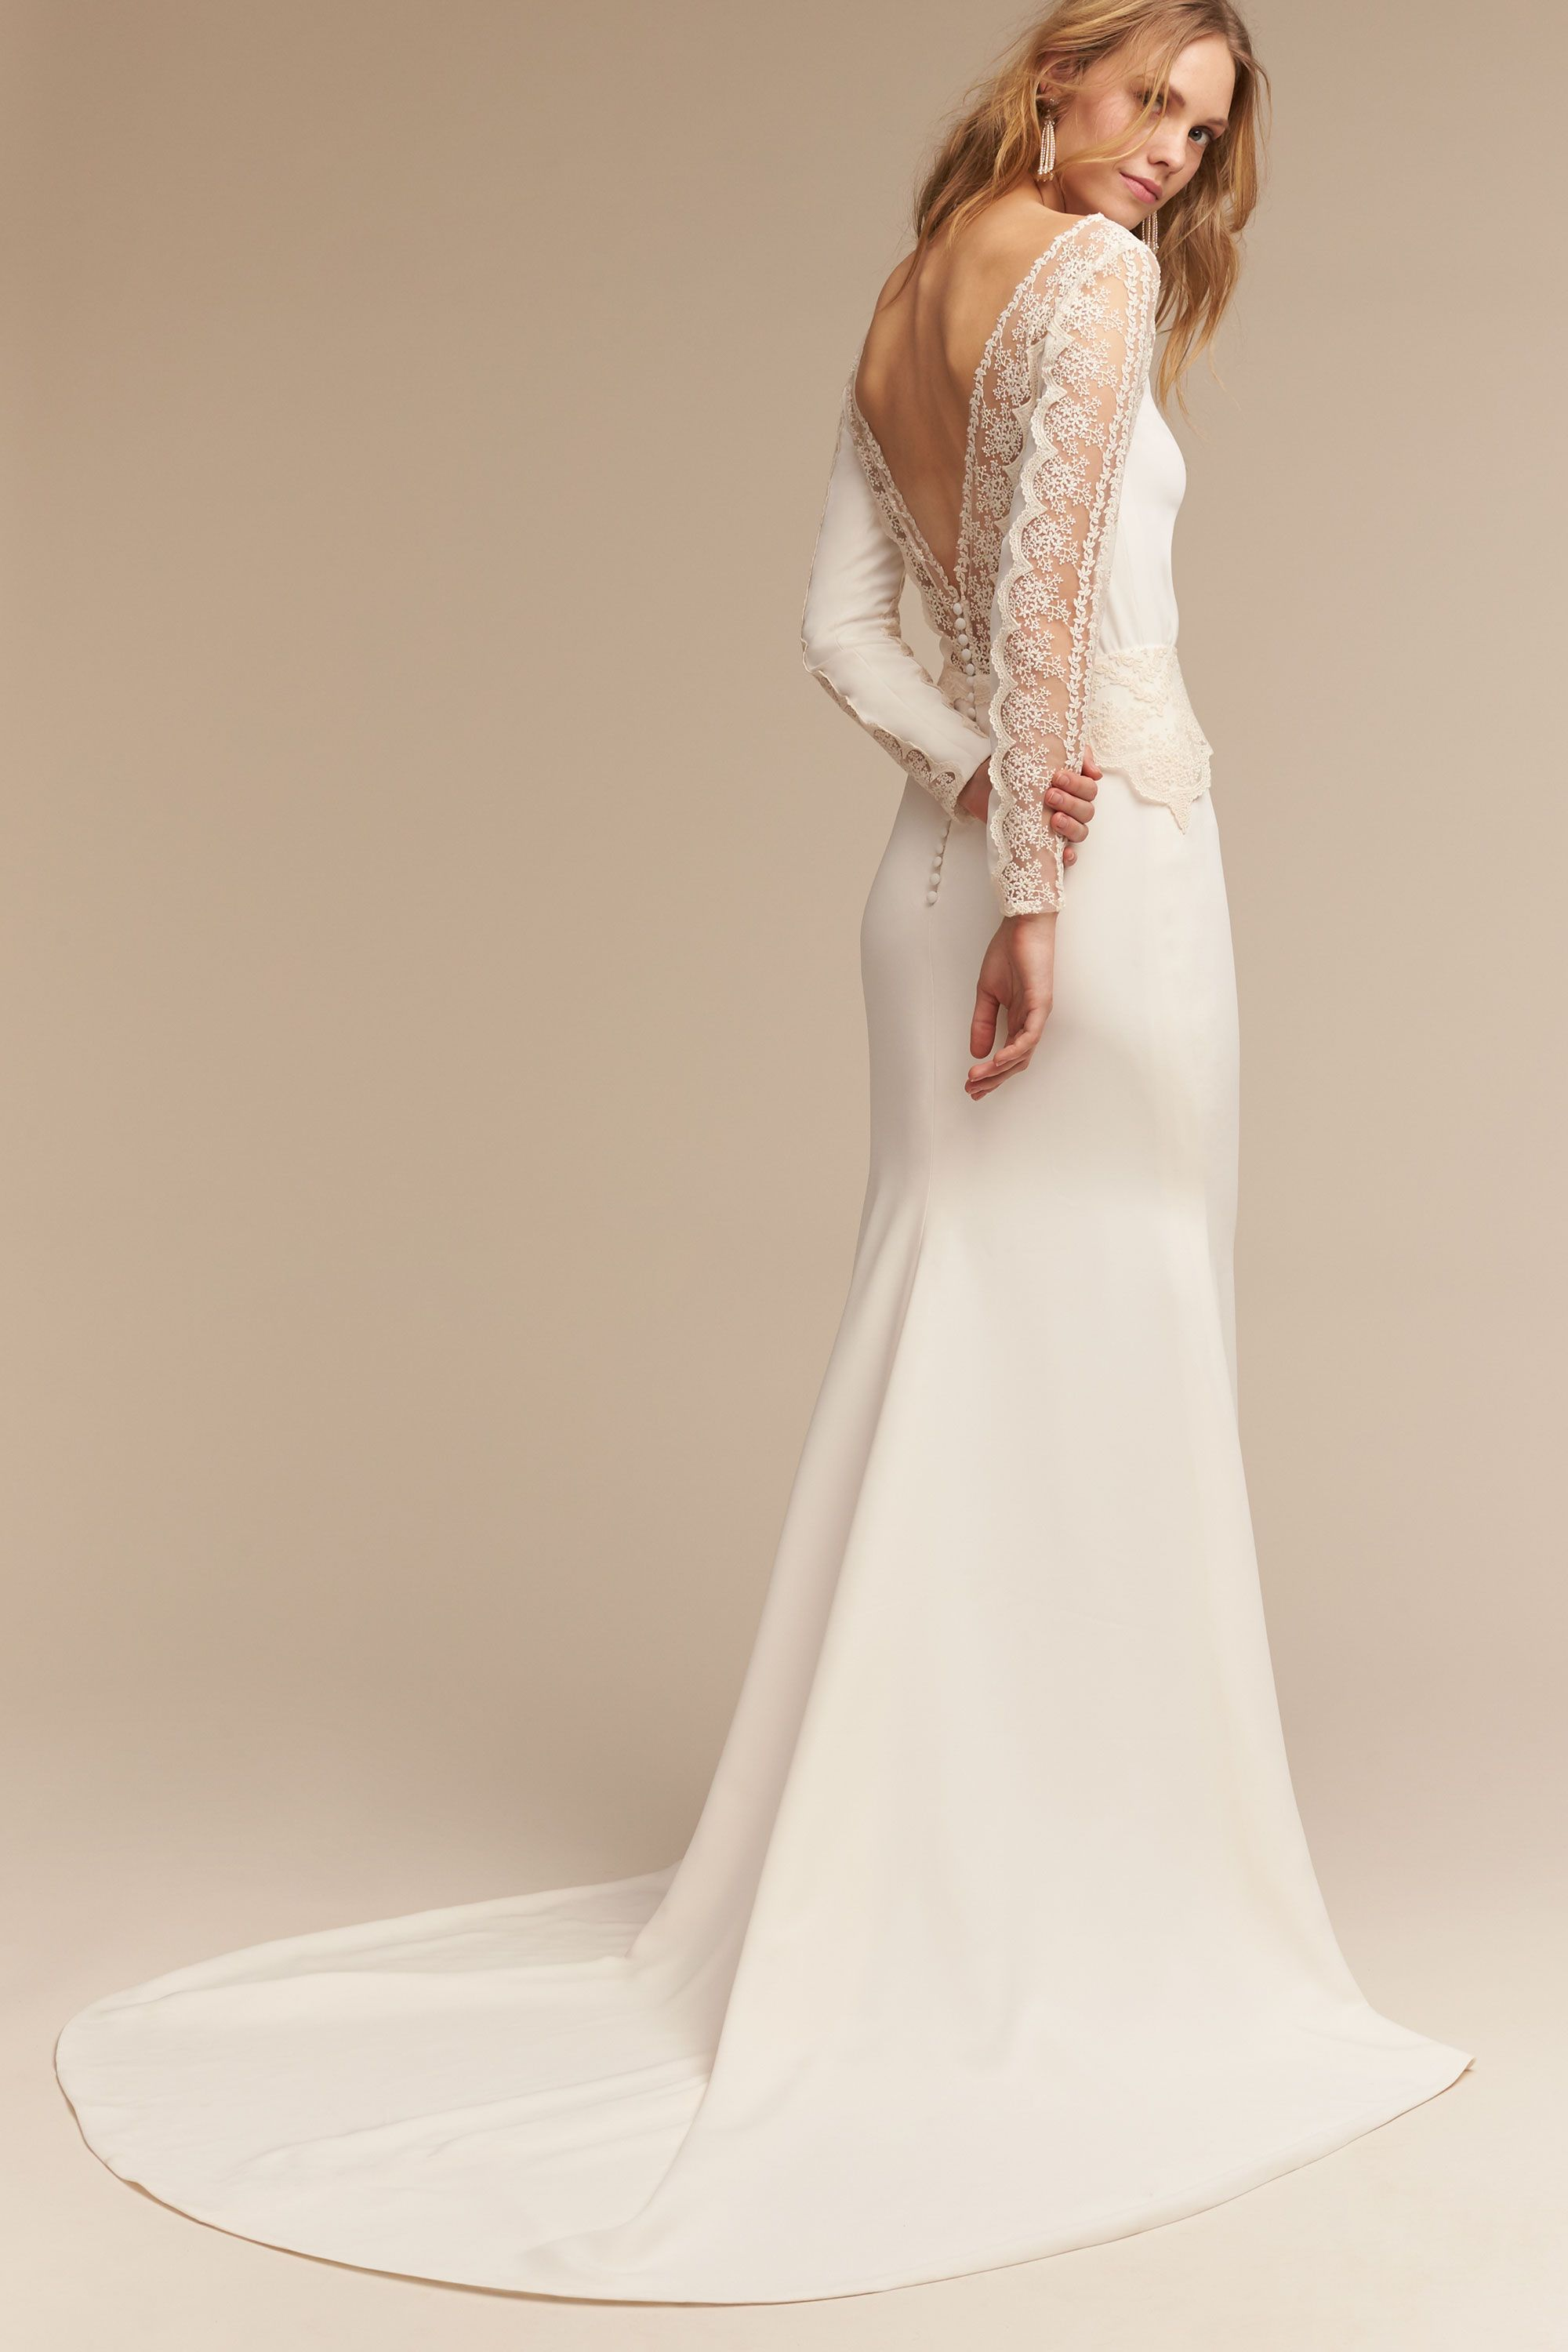 Wedding Wedding Gowns With Sleeves wedding dresses with sleeves long lace cap sleeve bhldn sol gown gown